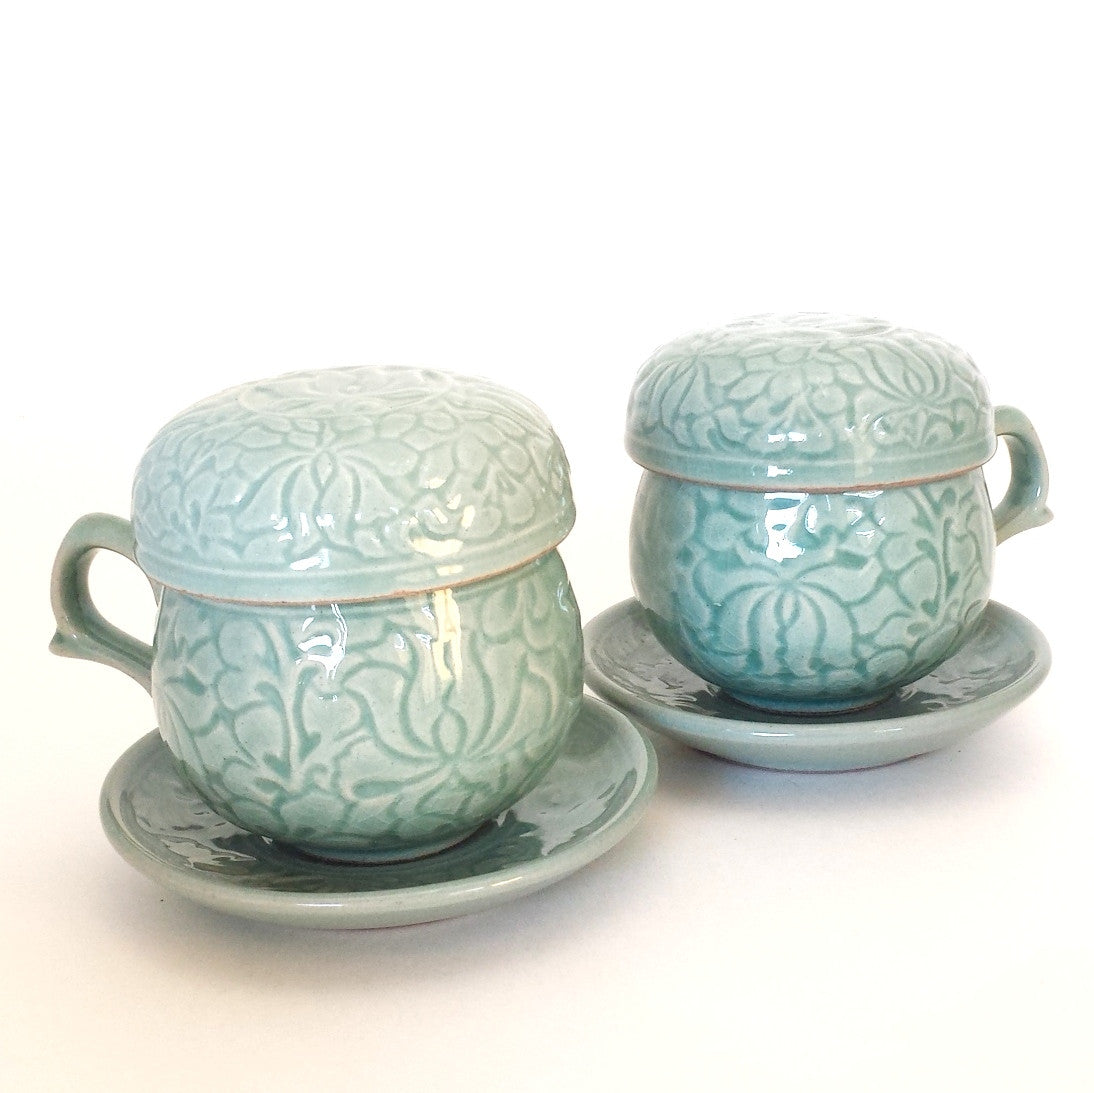 Celadon infuser cup set - Embossed Arabesque